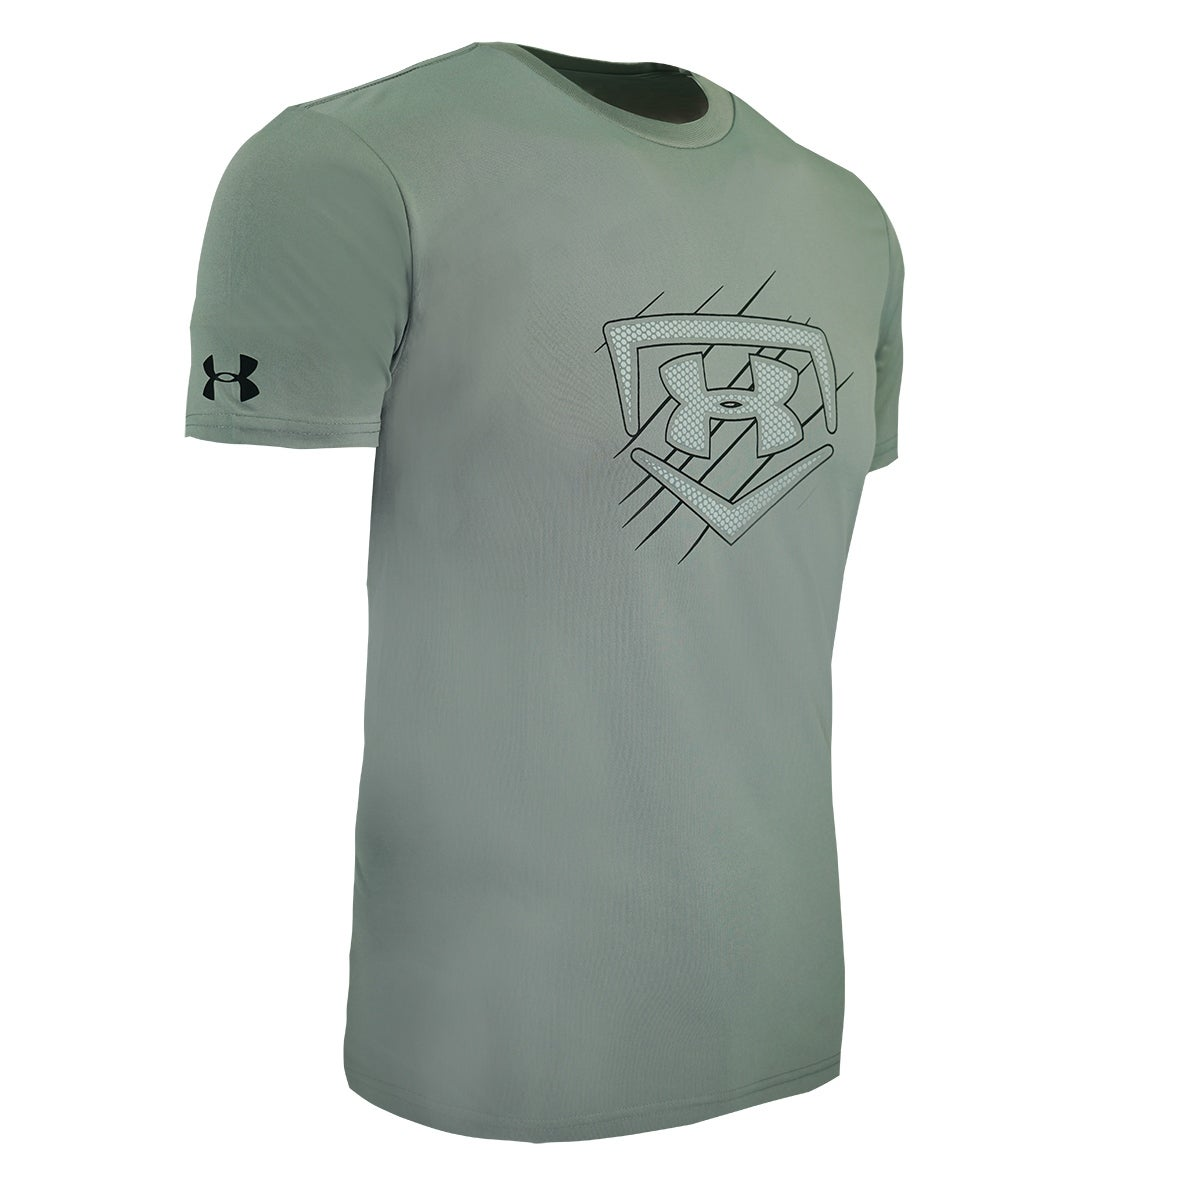 6874ee1c Shop Under Armour Men's Heatgear Graphic Big Logo T-Shirt -  Steel/Grey/Black - Free Shipping On Orders Over $45 - Overstock - 27902892